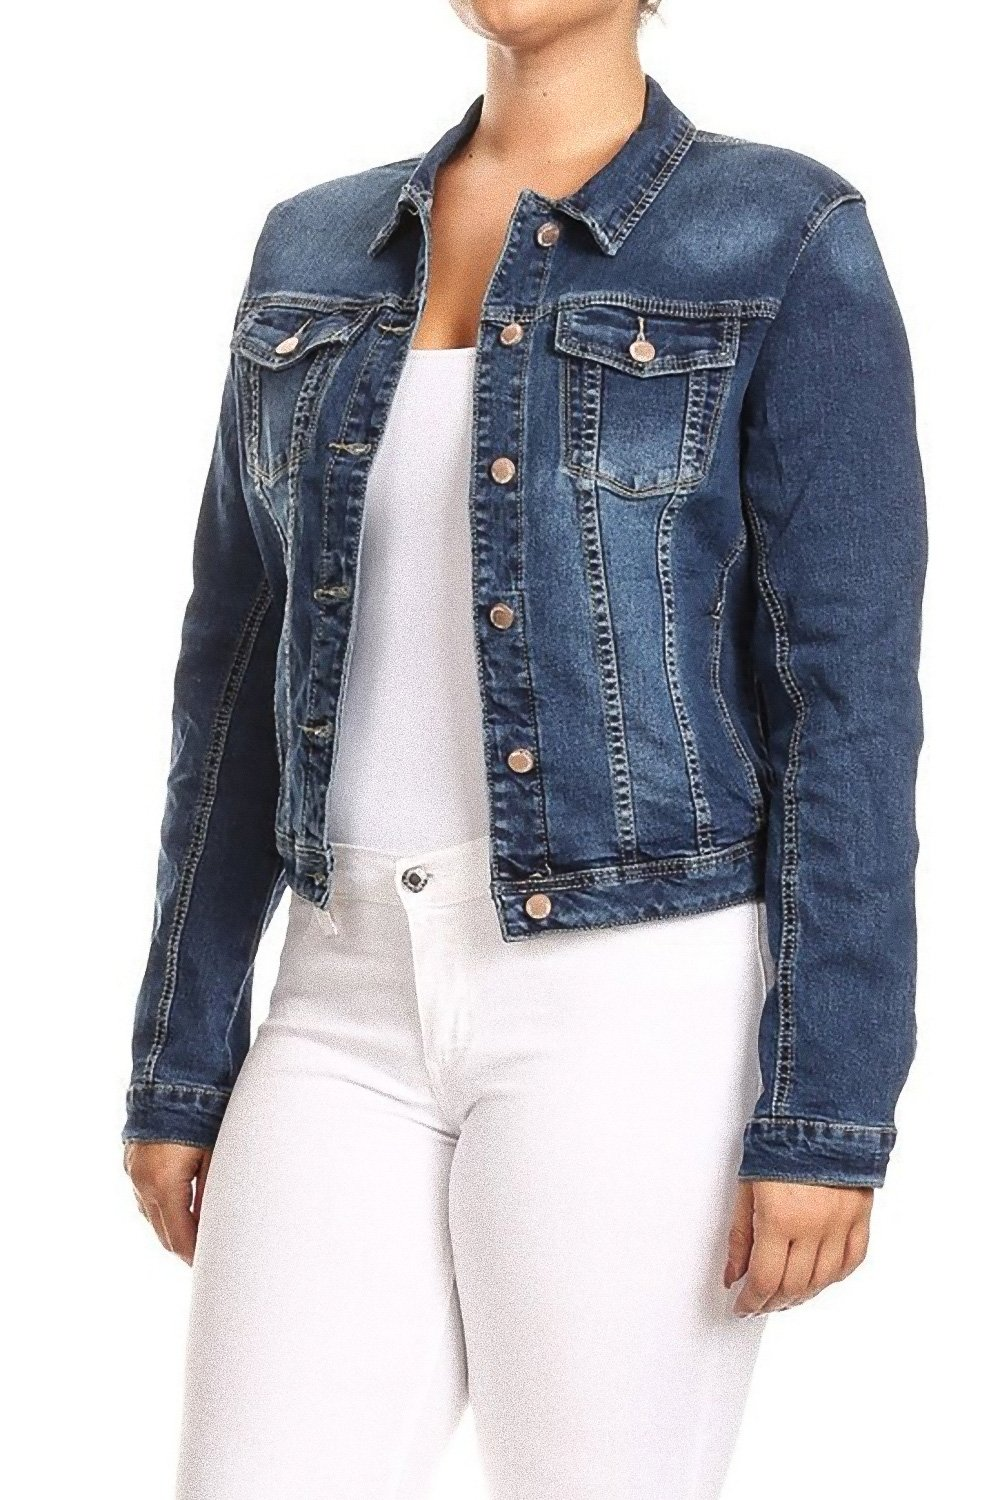 Women's Plus Size, Premium Denim Jackets Long Sleeve Loose Jean Coats in M. Blue Size 2XL by Fashion2Love